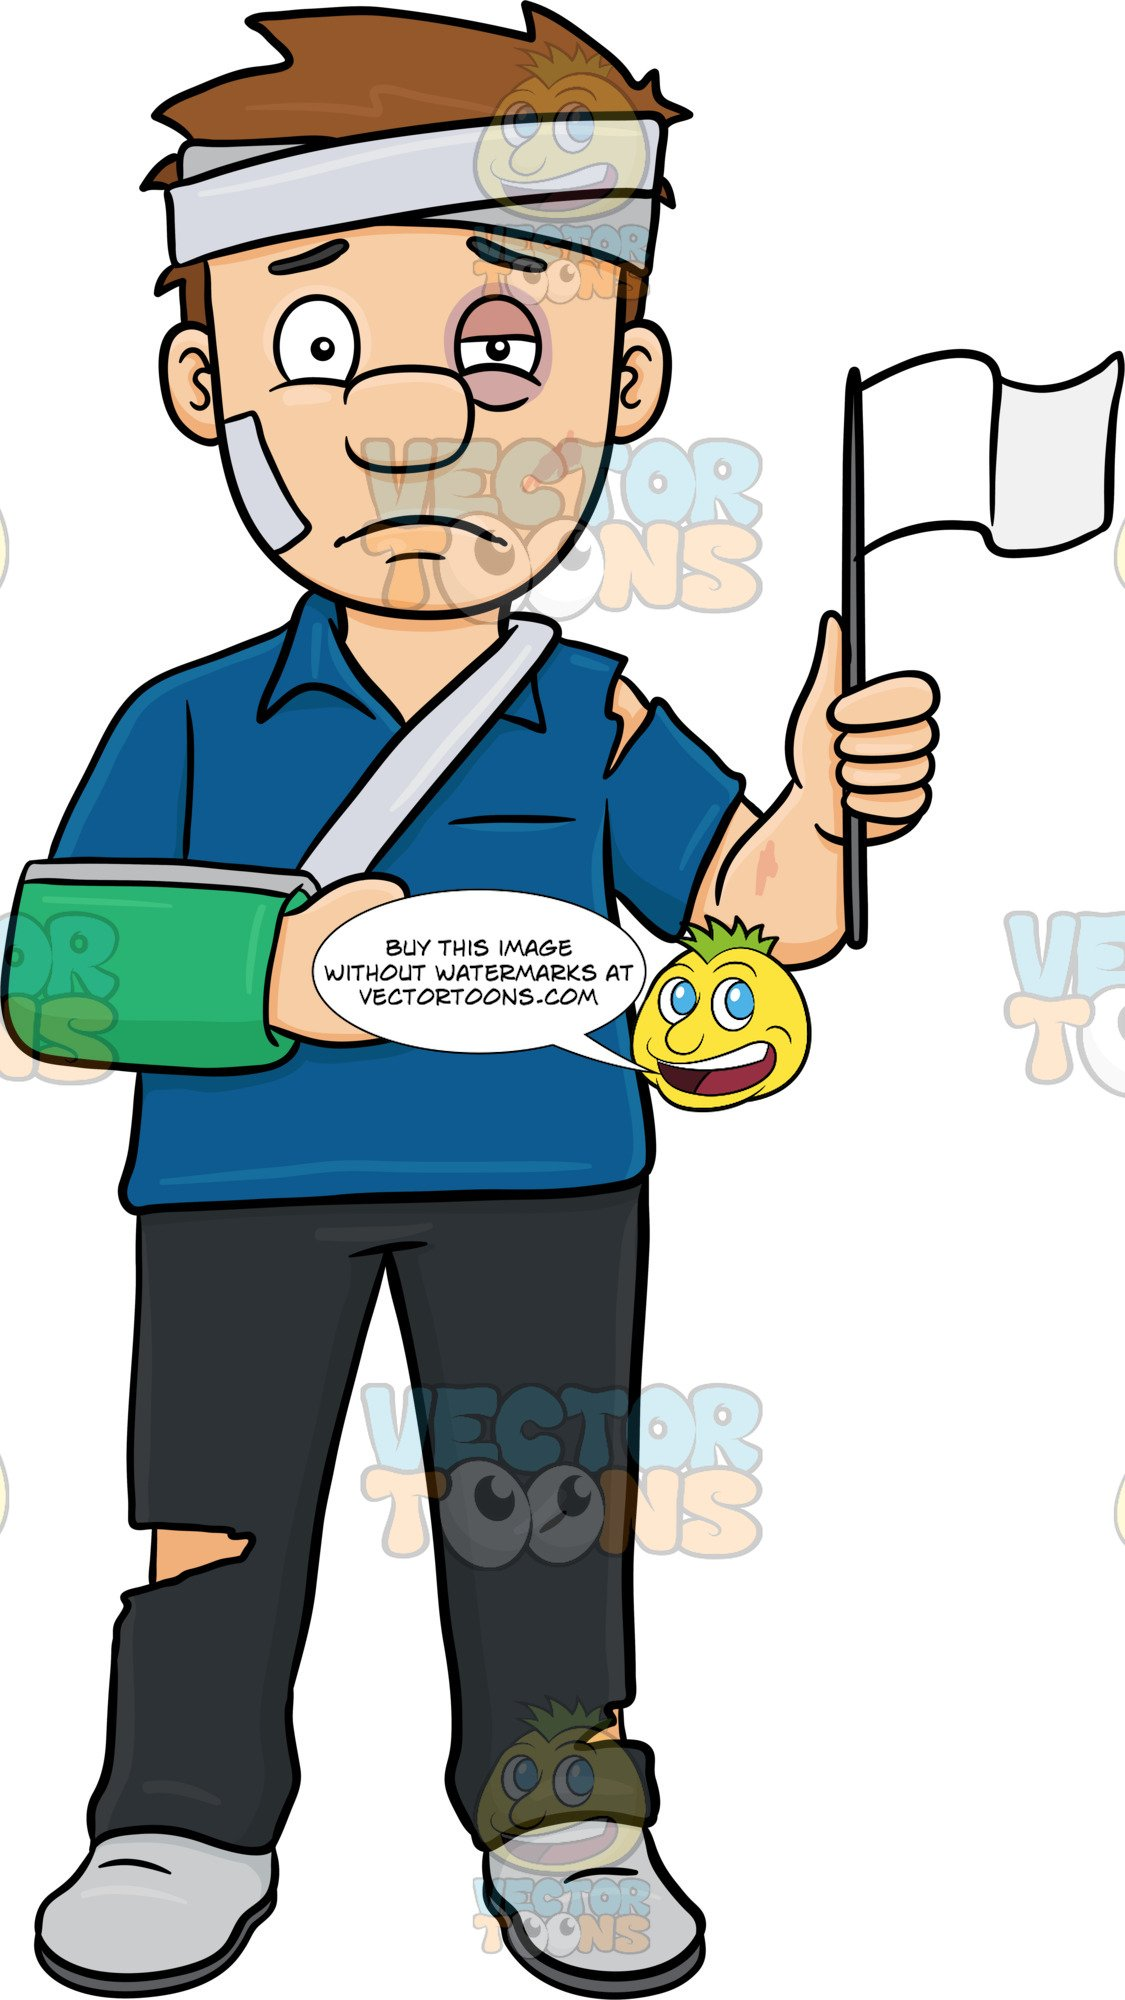 Clipart injured person freeuse An Injured Man Opting Out Of A Fight By Surrendering freeuse